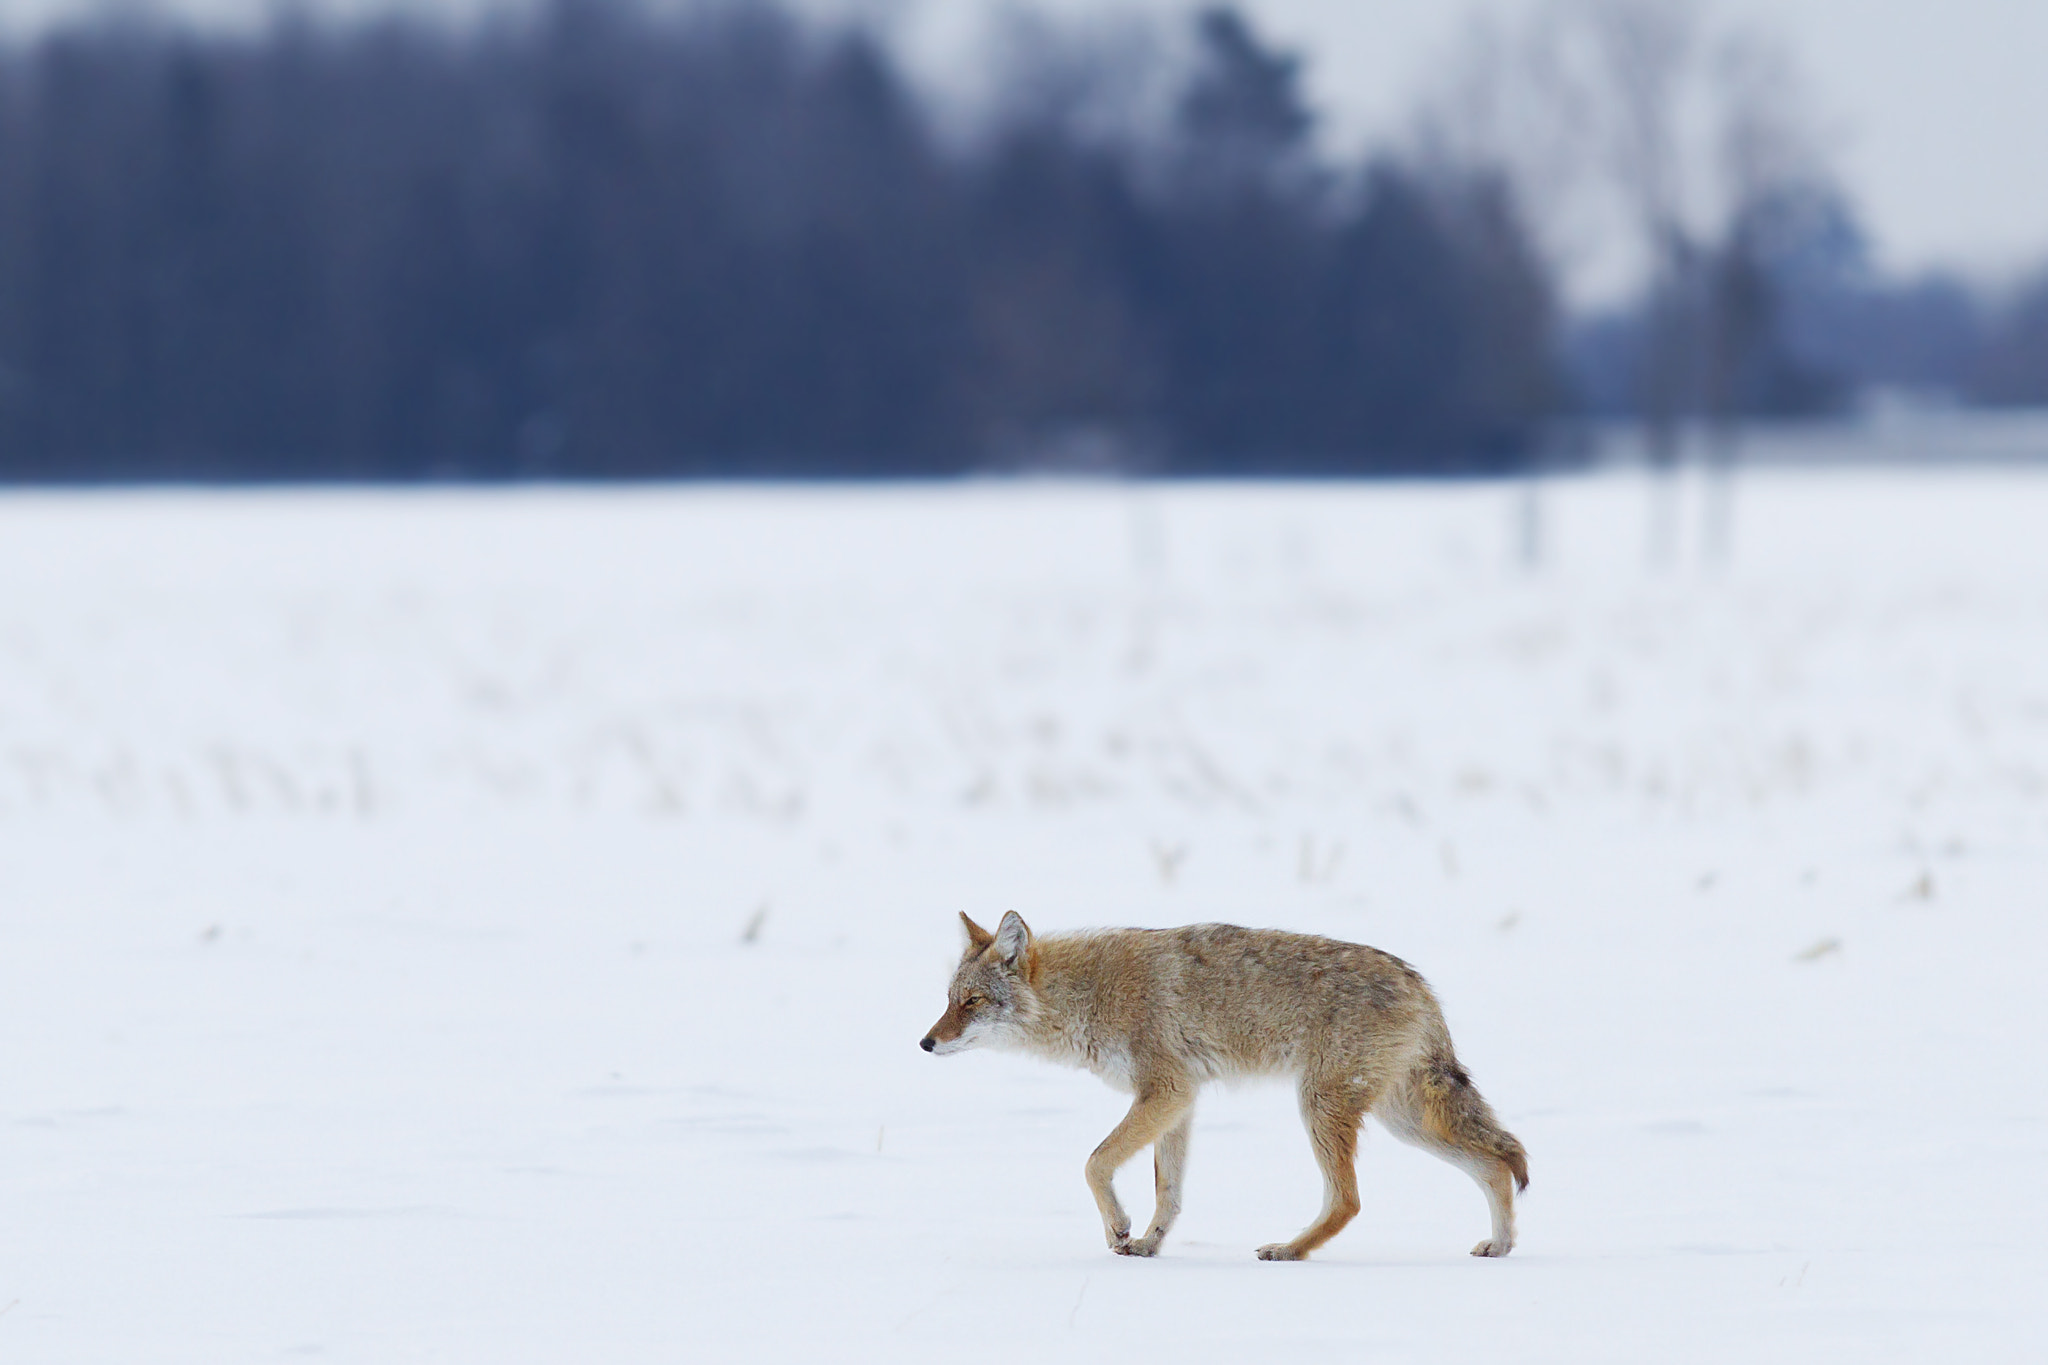 Photograph Coyote in winter by Jim Cumming on 500px